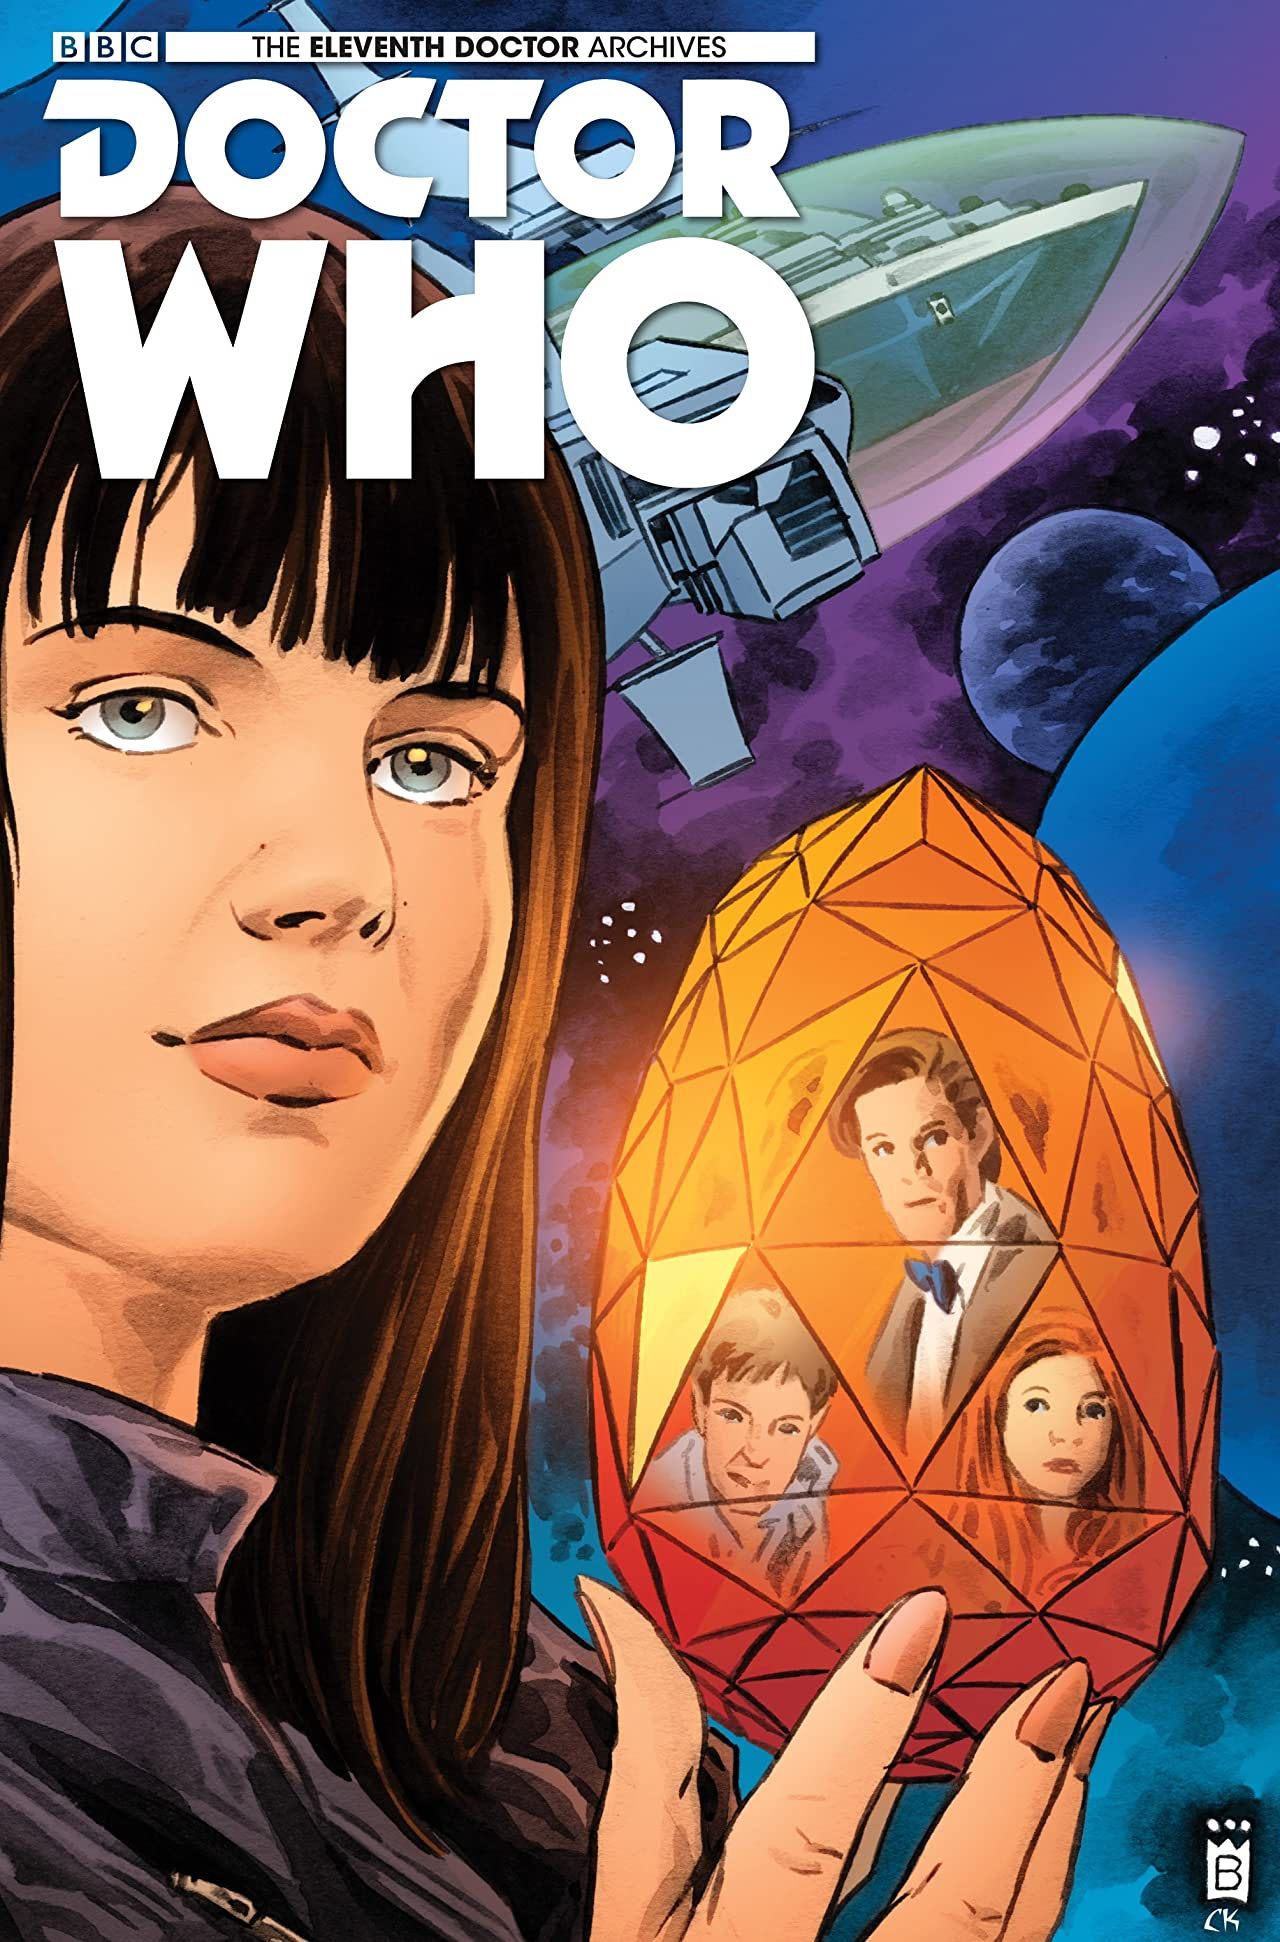 Doctor Who: The Eleventh Doctor Archives #28